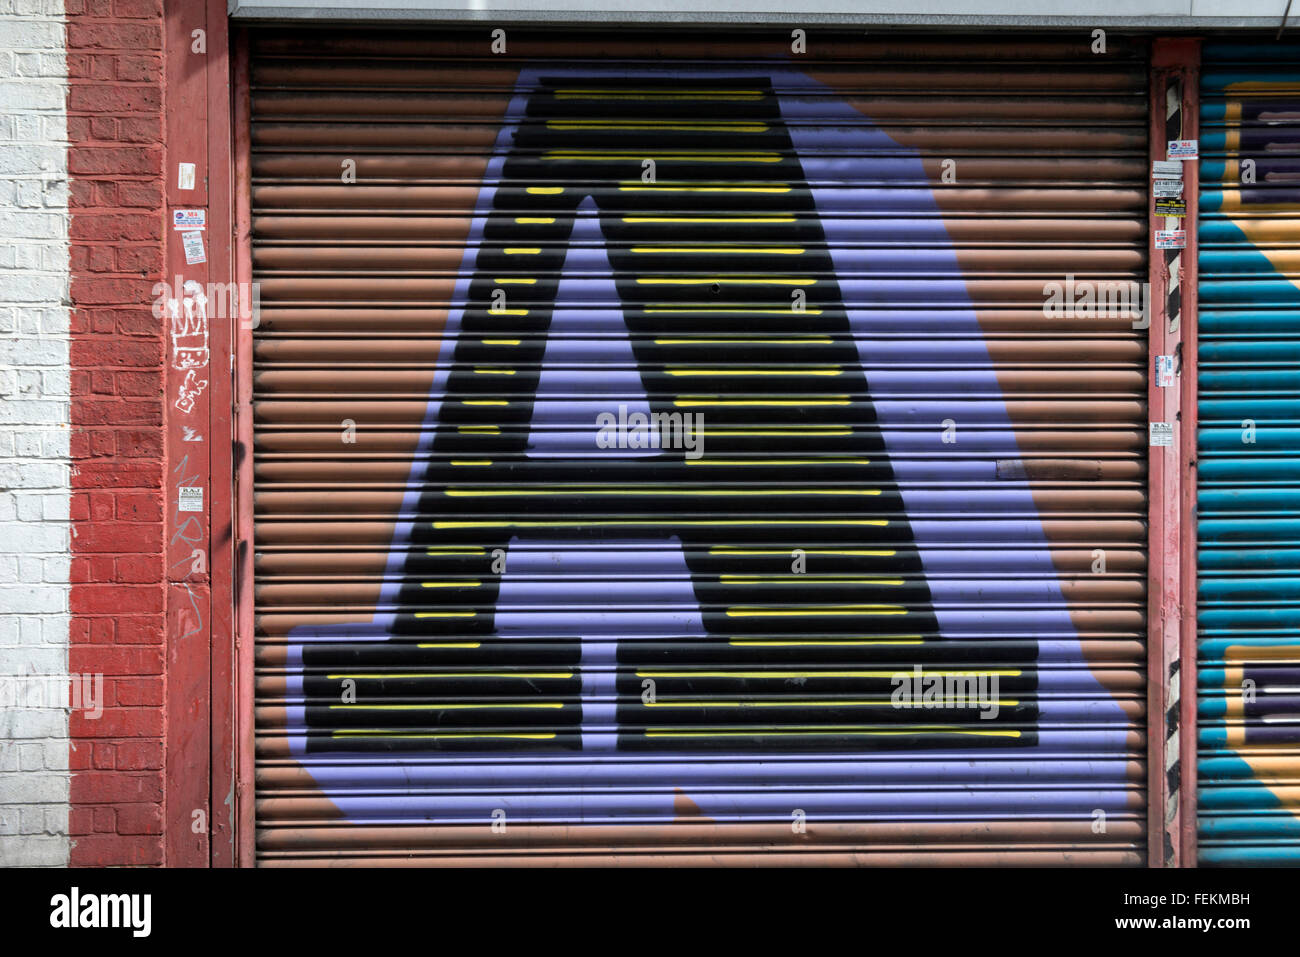 Ben Eine. Street art, a large initial A painted on metal scrolling shutters. - Stock Image